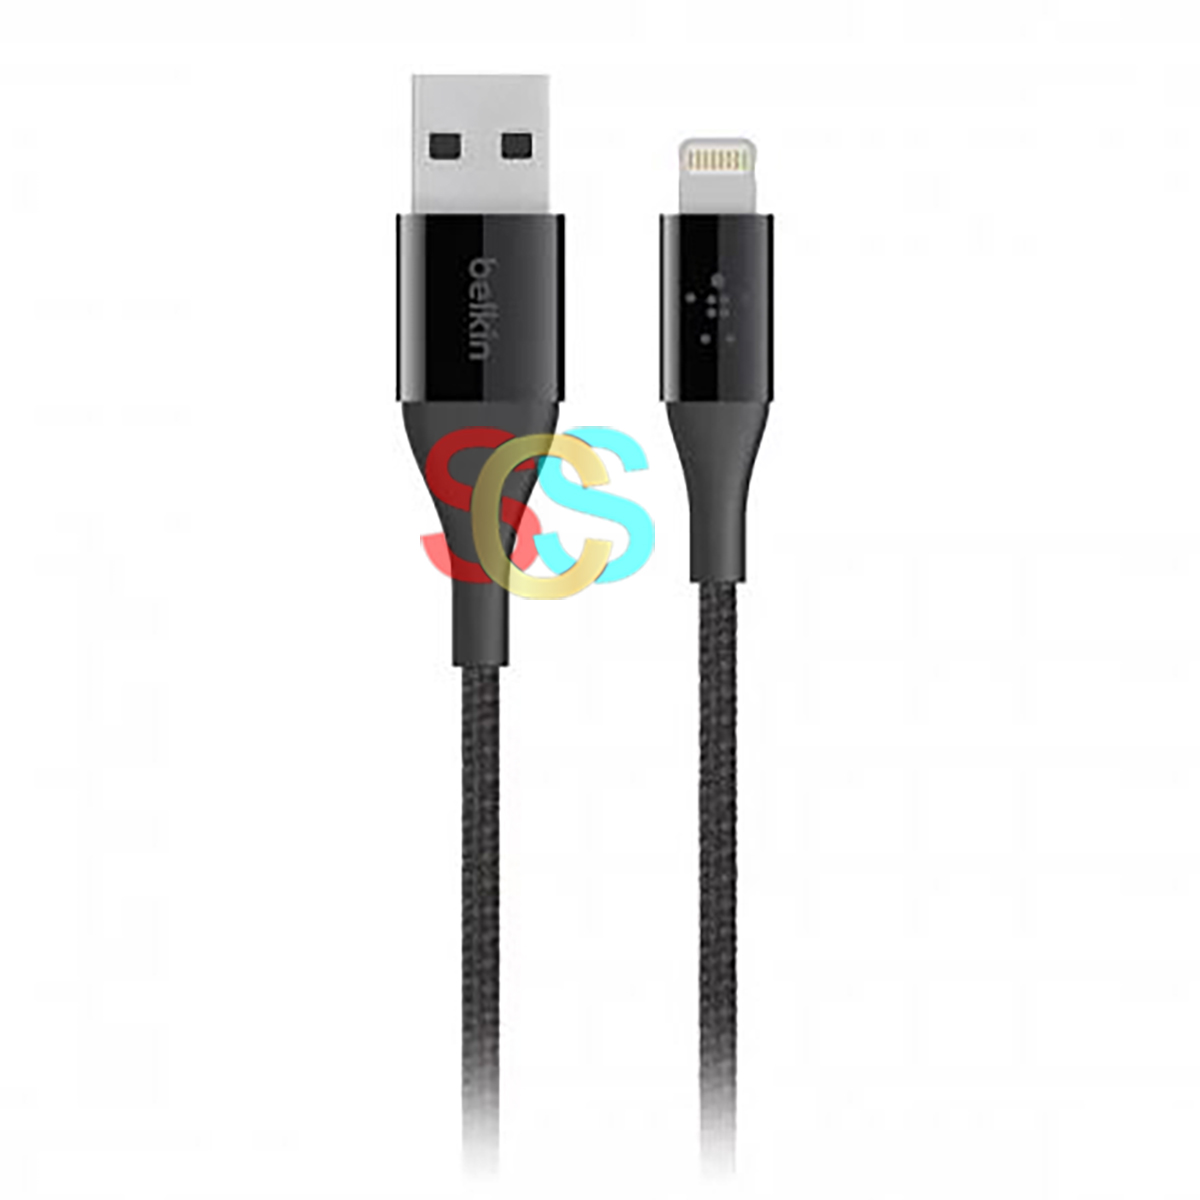 Belkin Lightning Male to USB Male, 1.2 Meter, Black Charging Cable